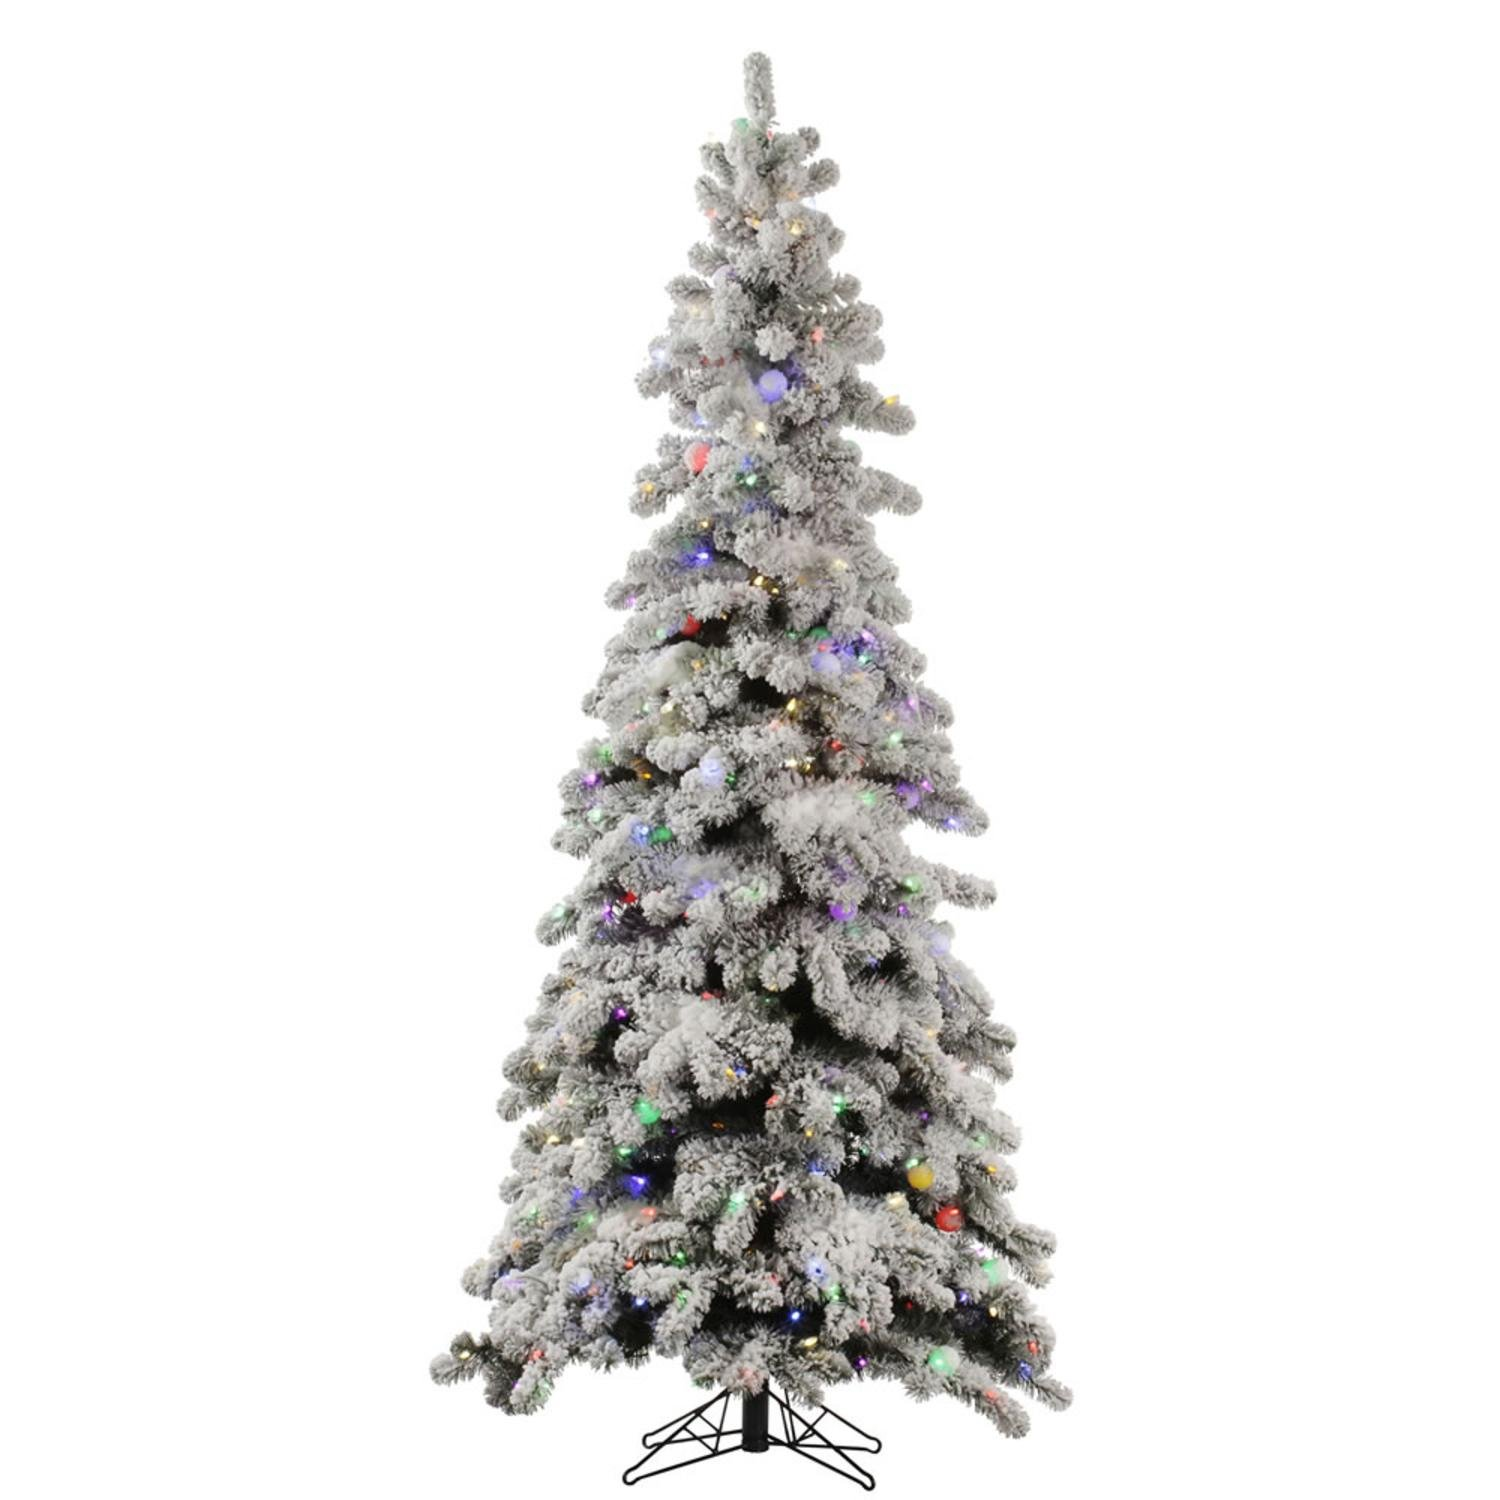 6' Pre-Lit Slim Flocked Kodiak Spruce Artificial Christmas Tree - Multi LED Lights